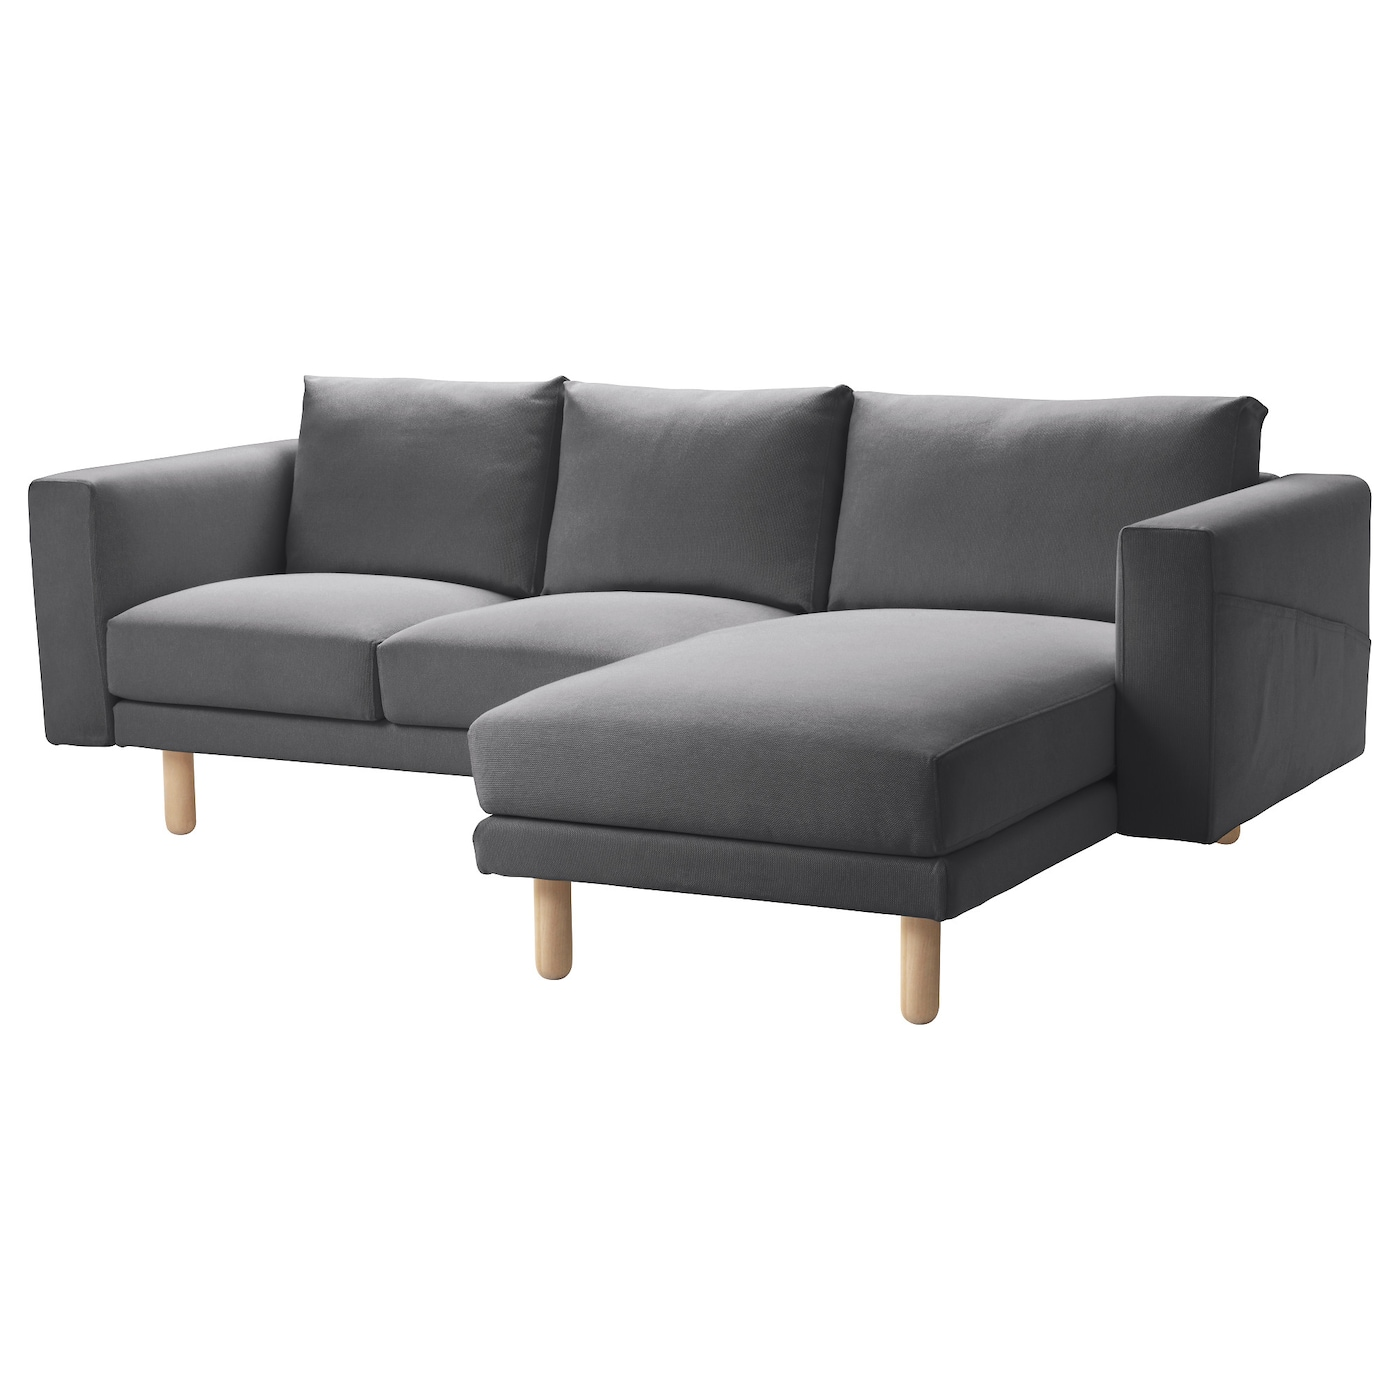 IKEA NORSBORG two-seat sofa with chaise longue